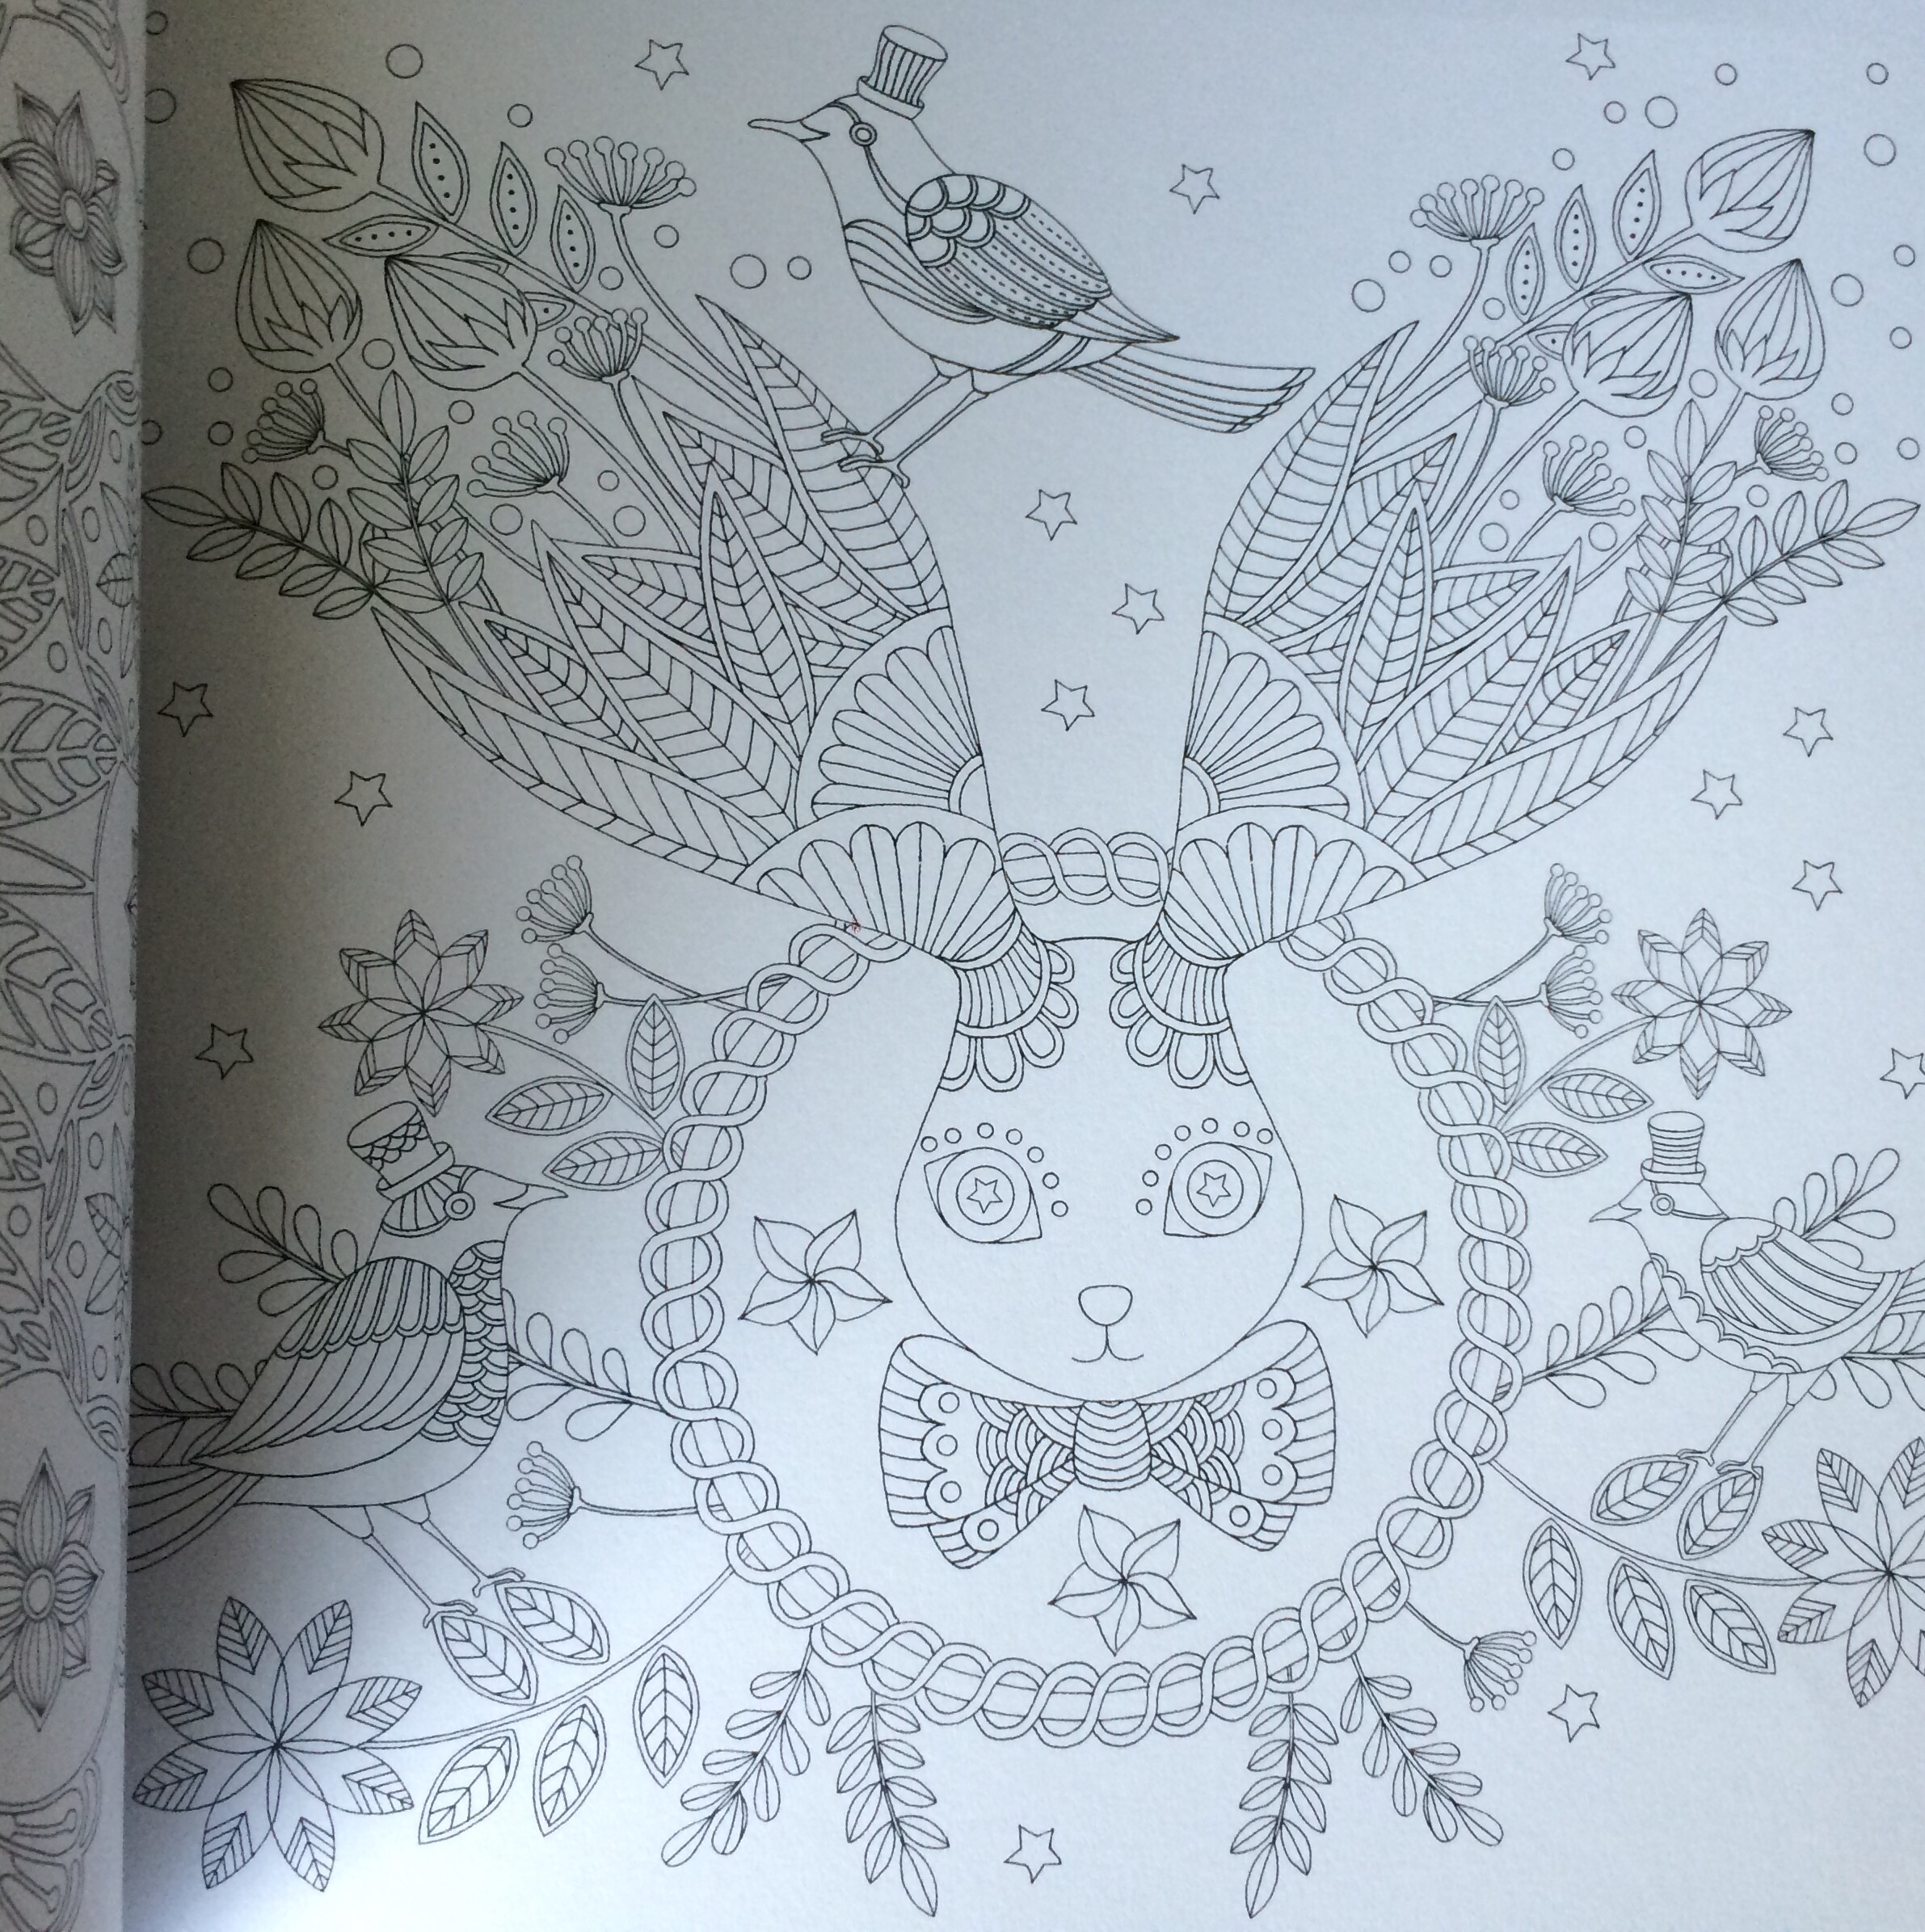 How much is the coloring book for adults - This Is Probably The Most Beautiful And Whimsical Coloring Book I Own And As You Have Seen From Previous Posts Link Or Add Photo Here I Own A Lot